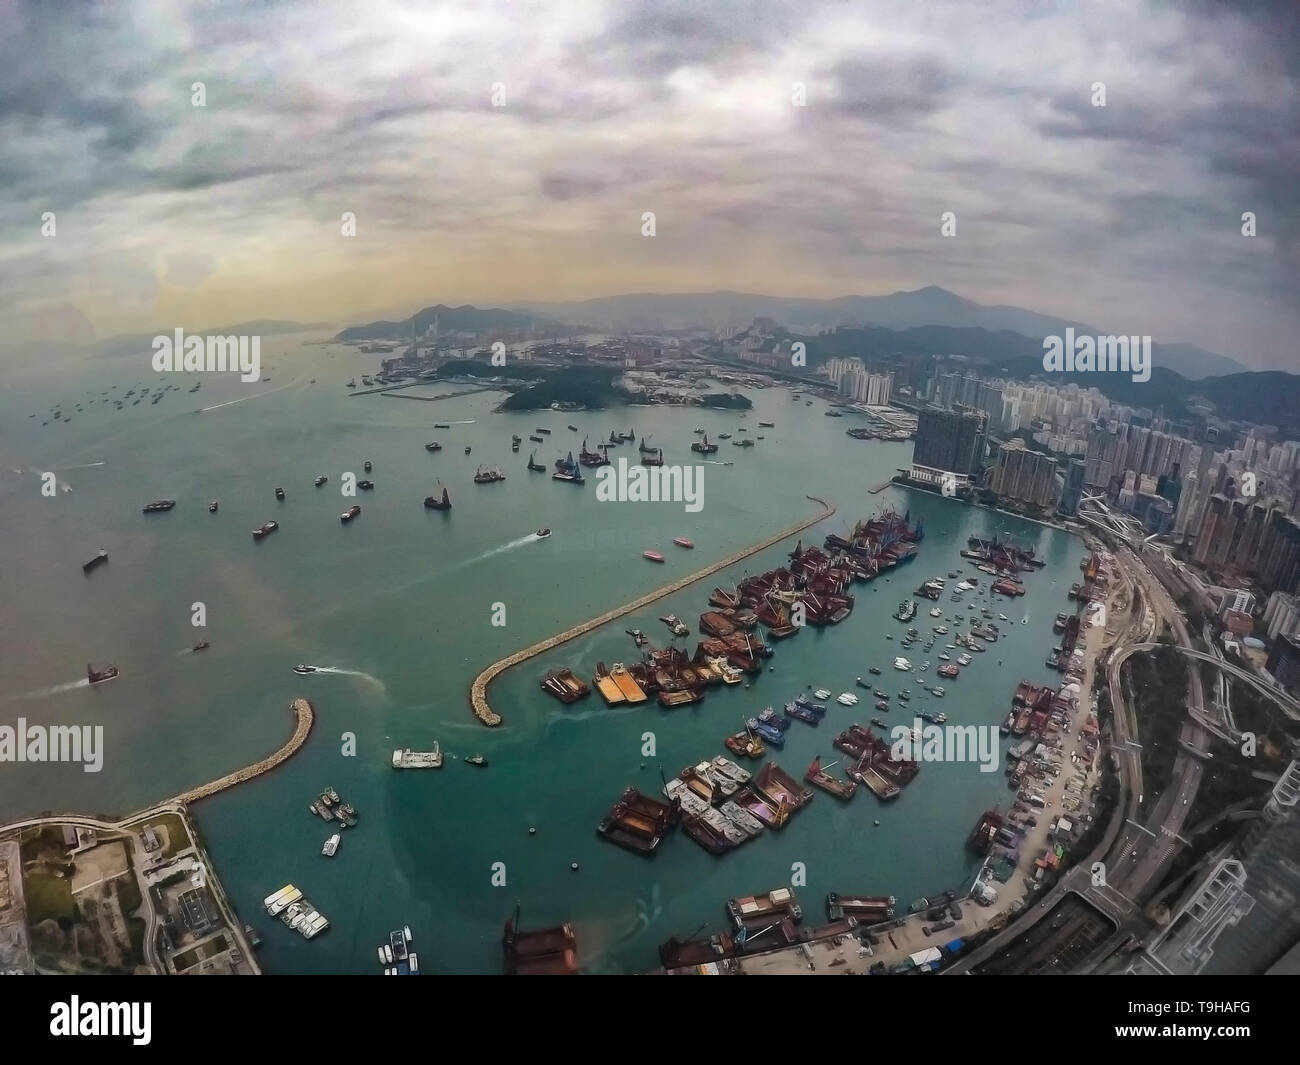 Views of Victoria Harbour and Hong Kong from above Stock Photo